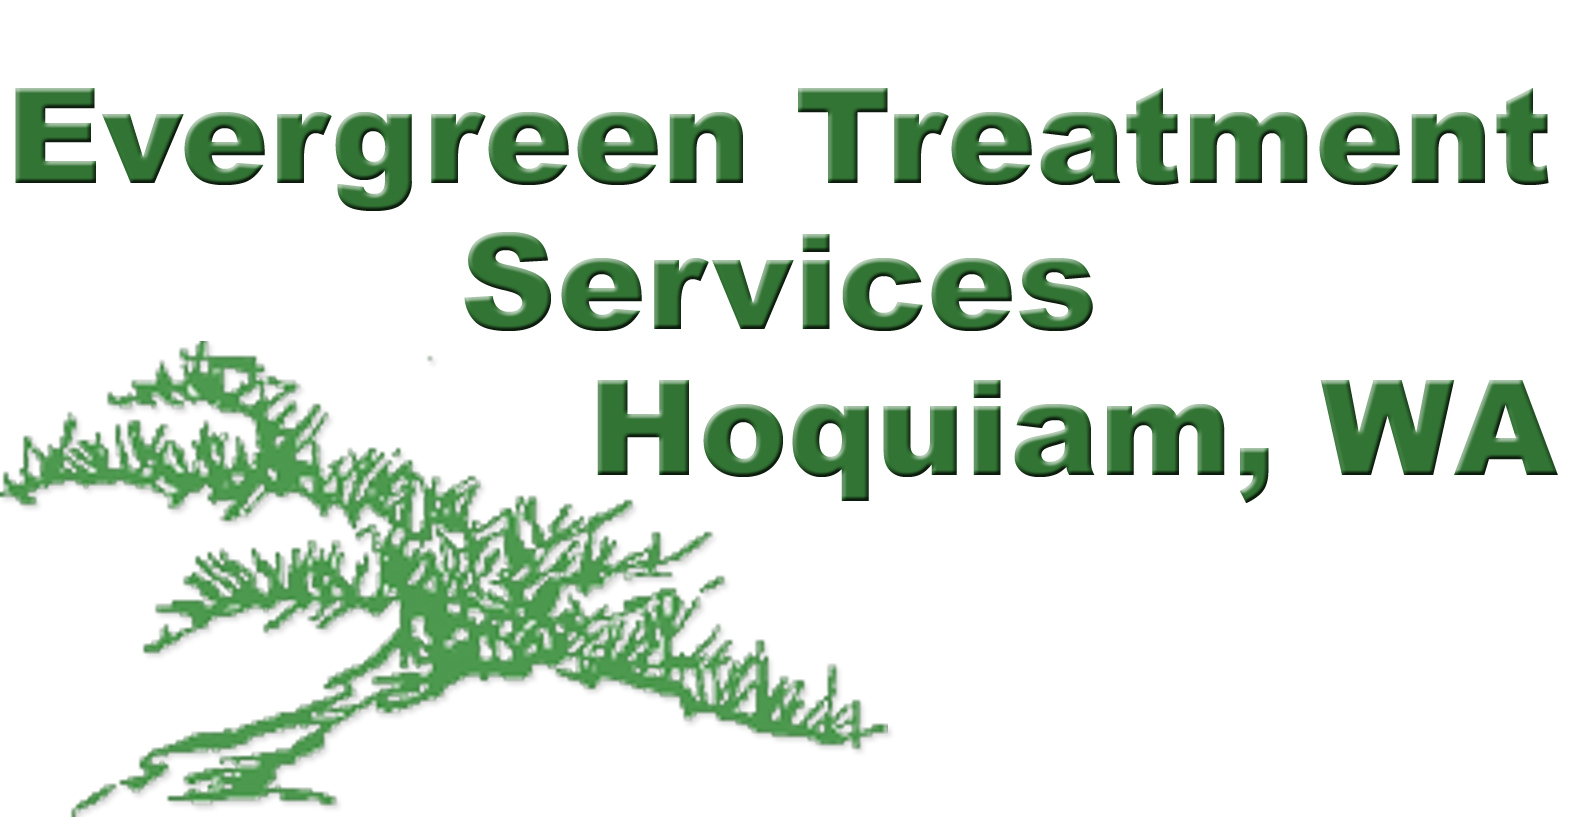 Evergreen Treatment